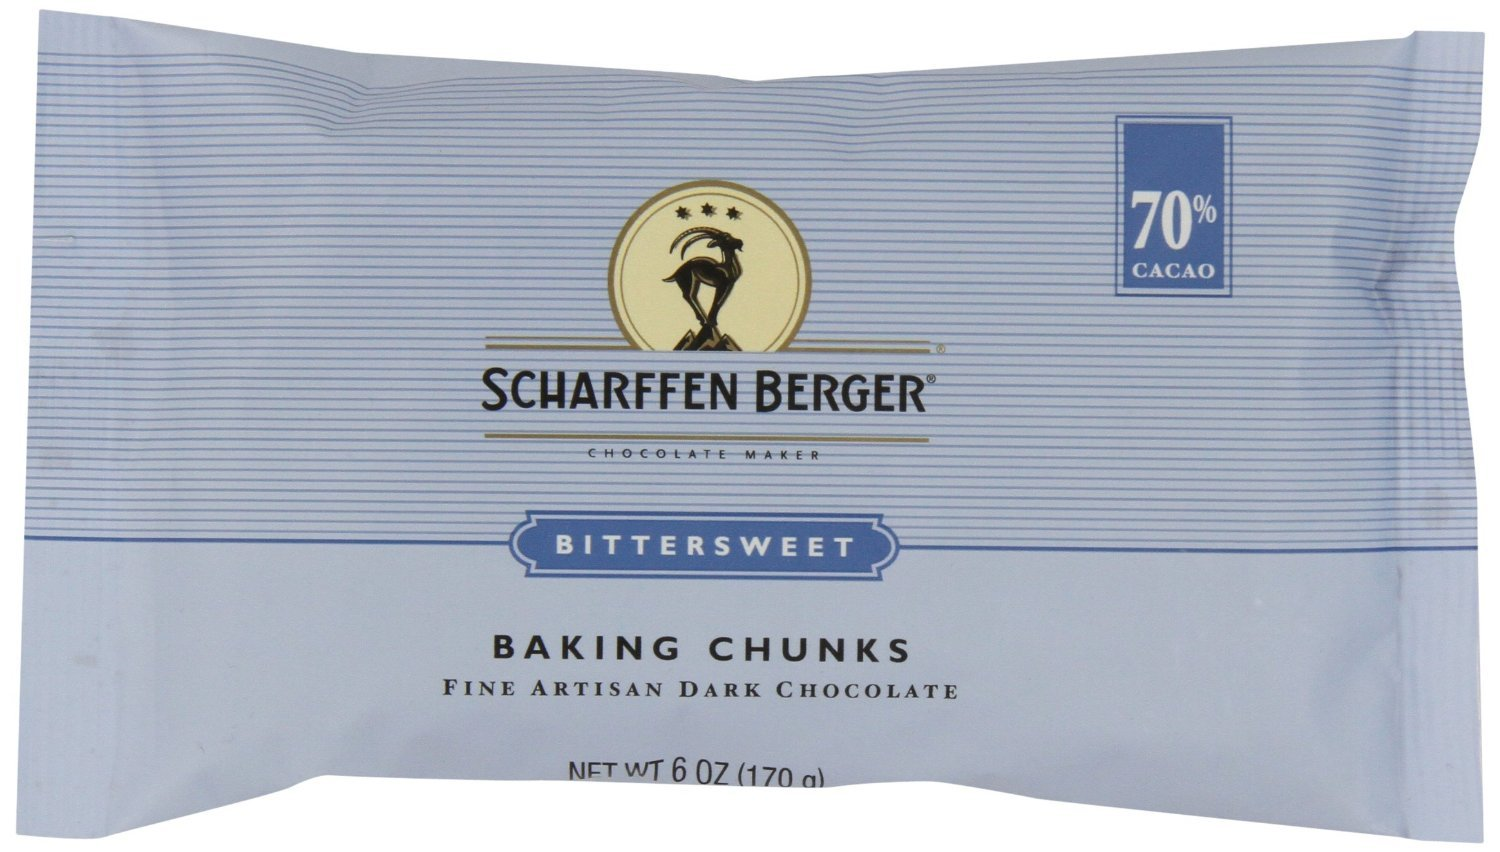 Scharffen Berger Baking Chunks, Bittersweet Dark Chocolate (70% Cacao), 6-Ounce Packages (Pack of 10) by Scharffen Berger